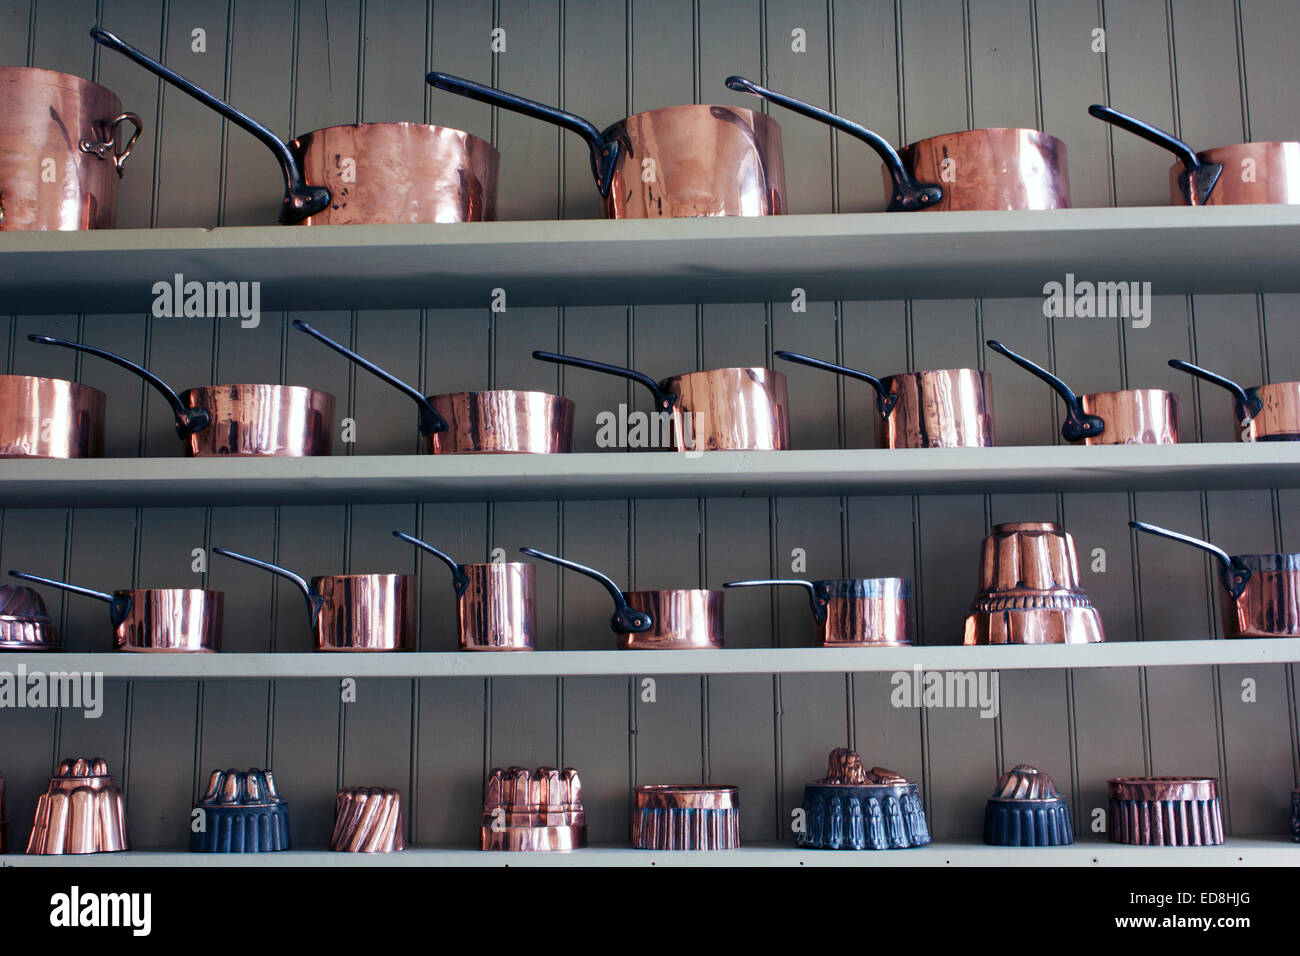 Copper Pots And Jelly Moulds Lined Up On Kitchen Shelf In England